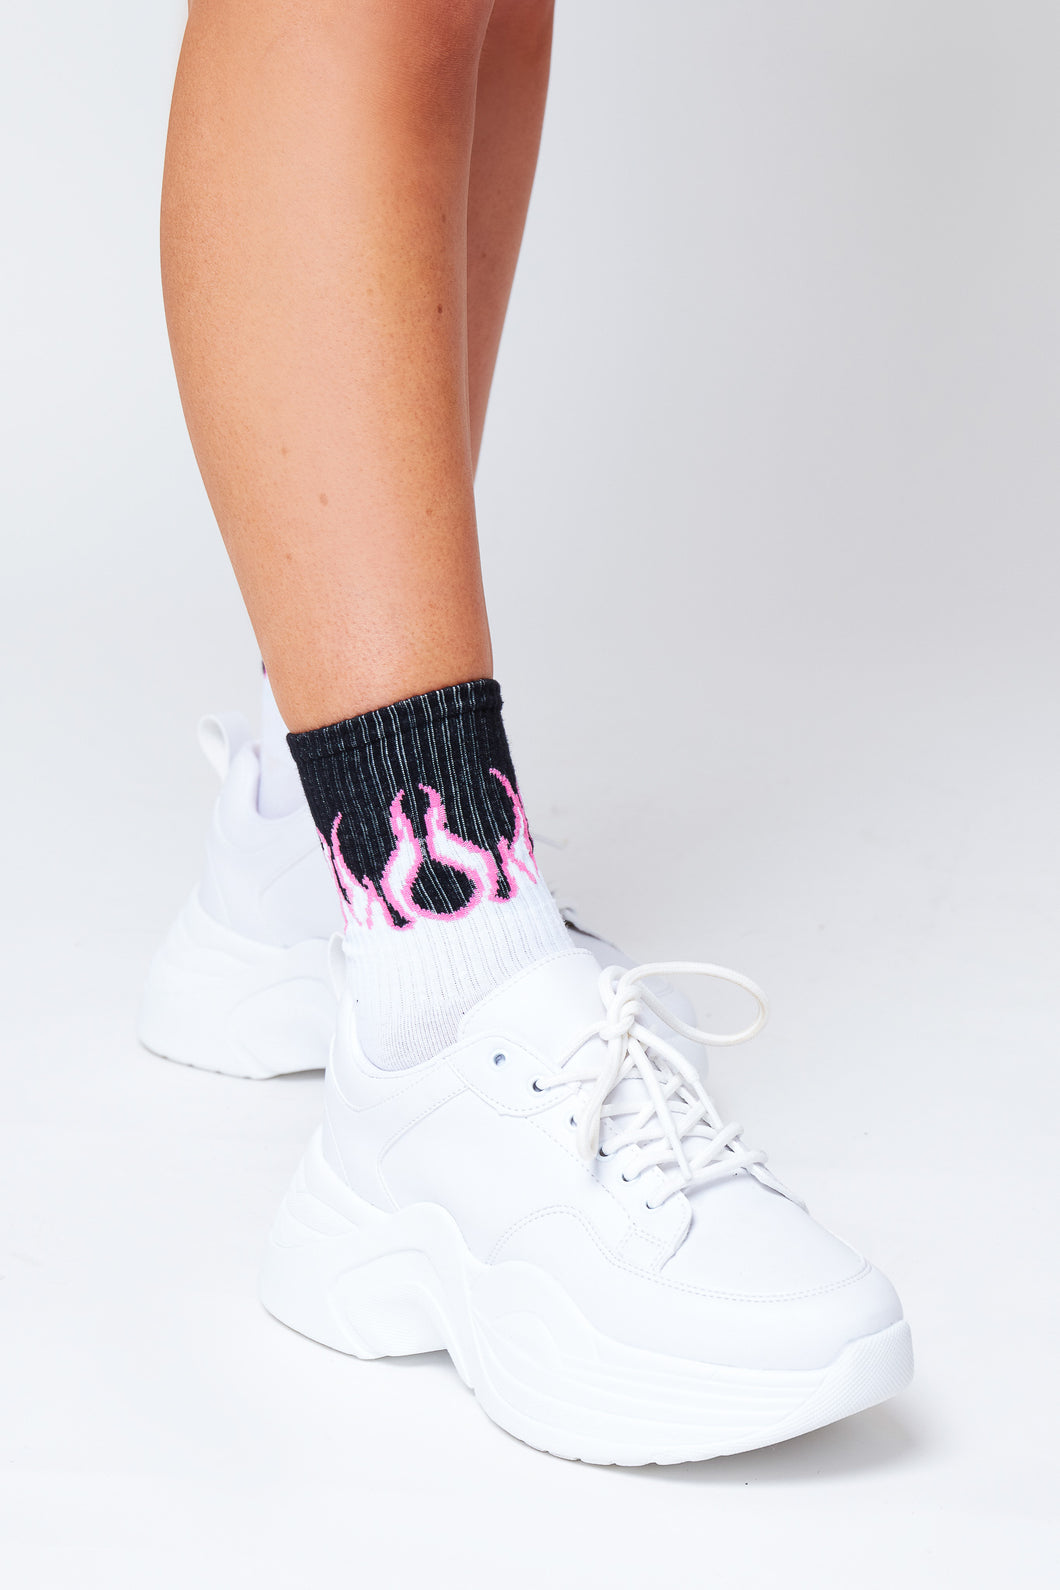 Flame socks in pink and white